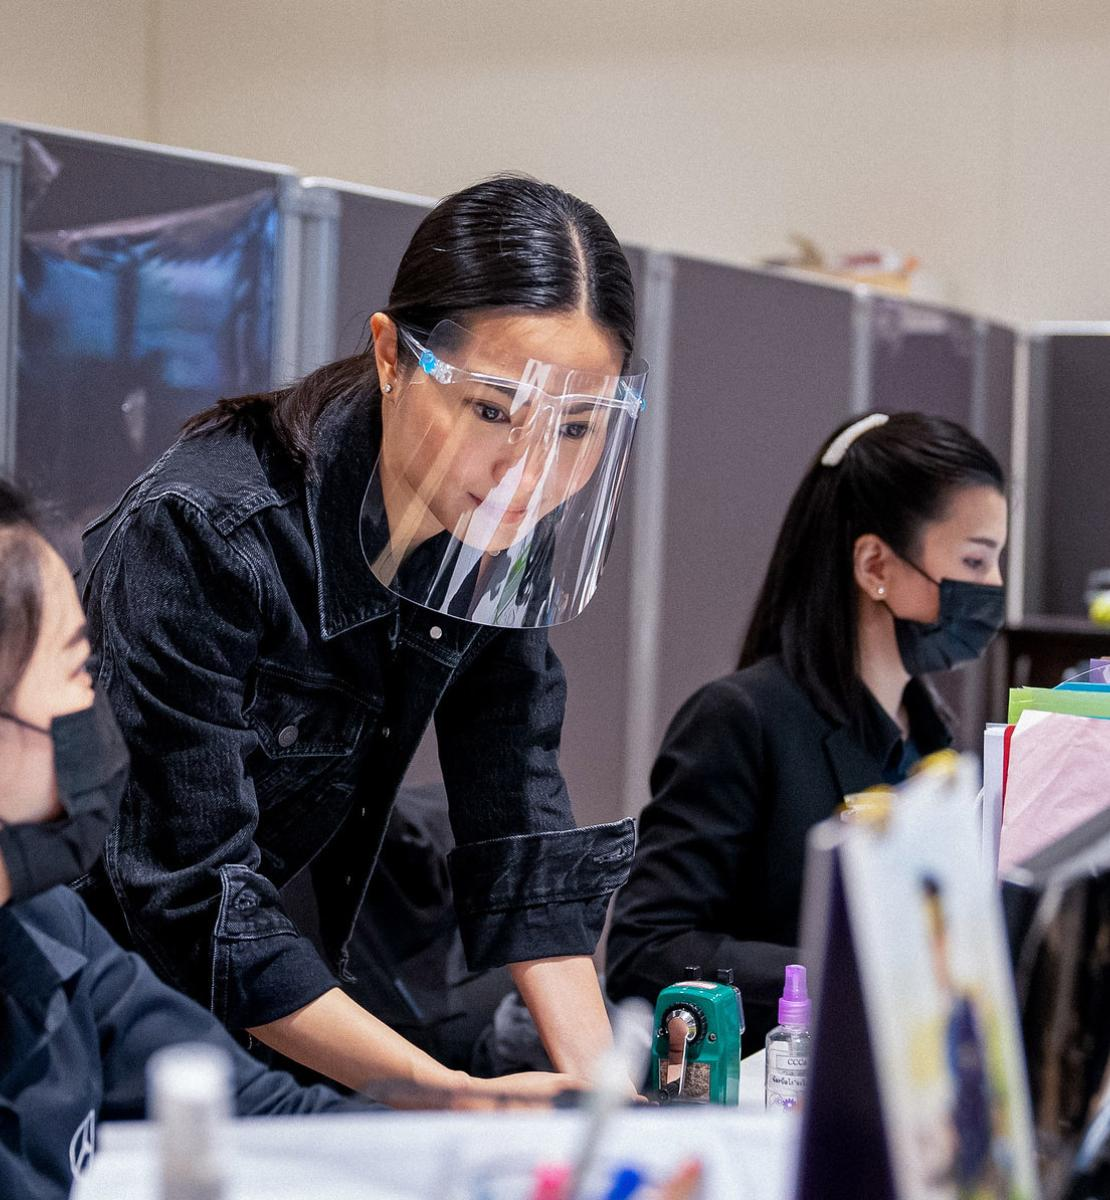 Women wearing protective masks and face shields work together at a desk at an office.